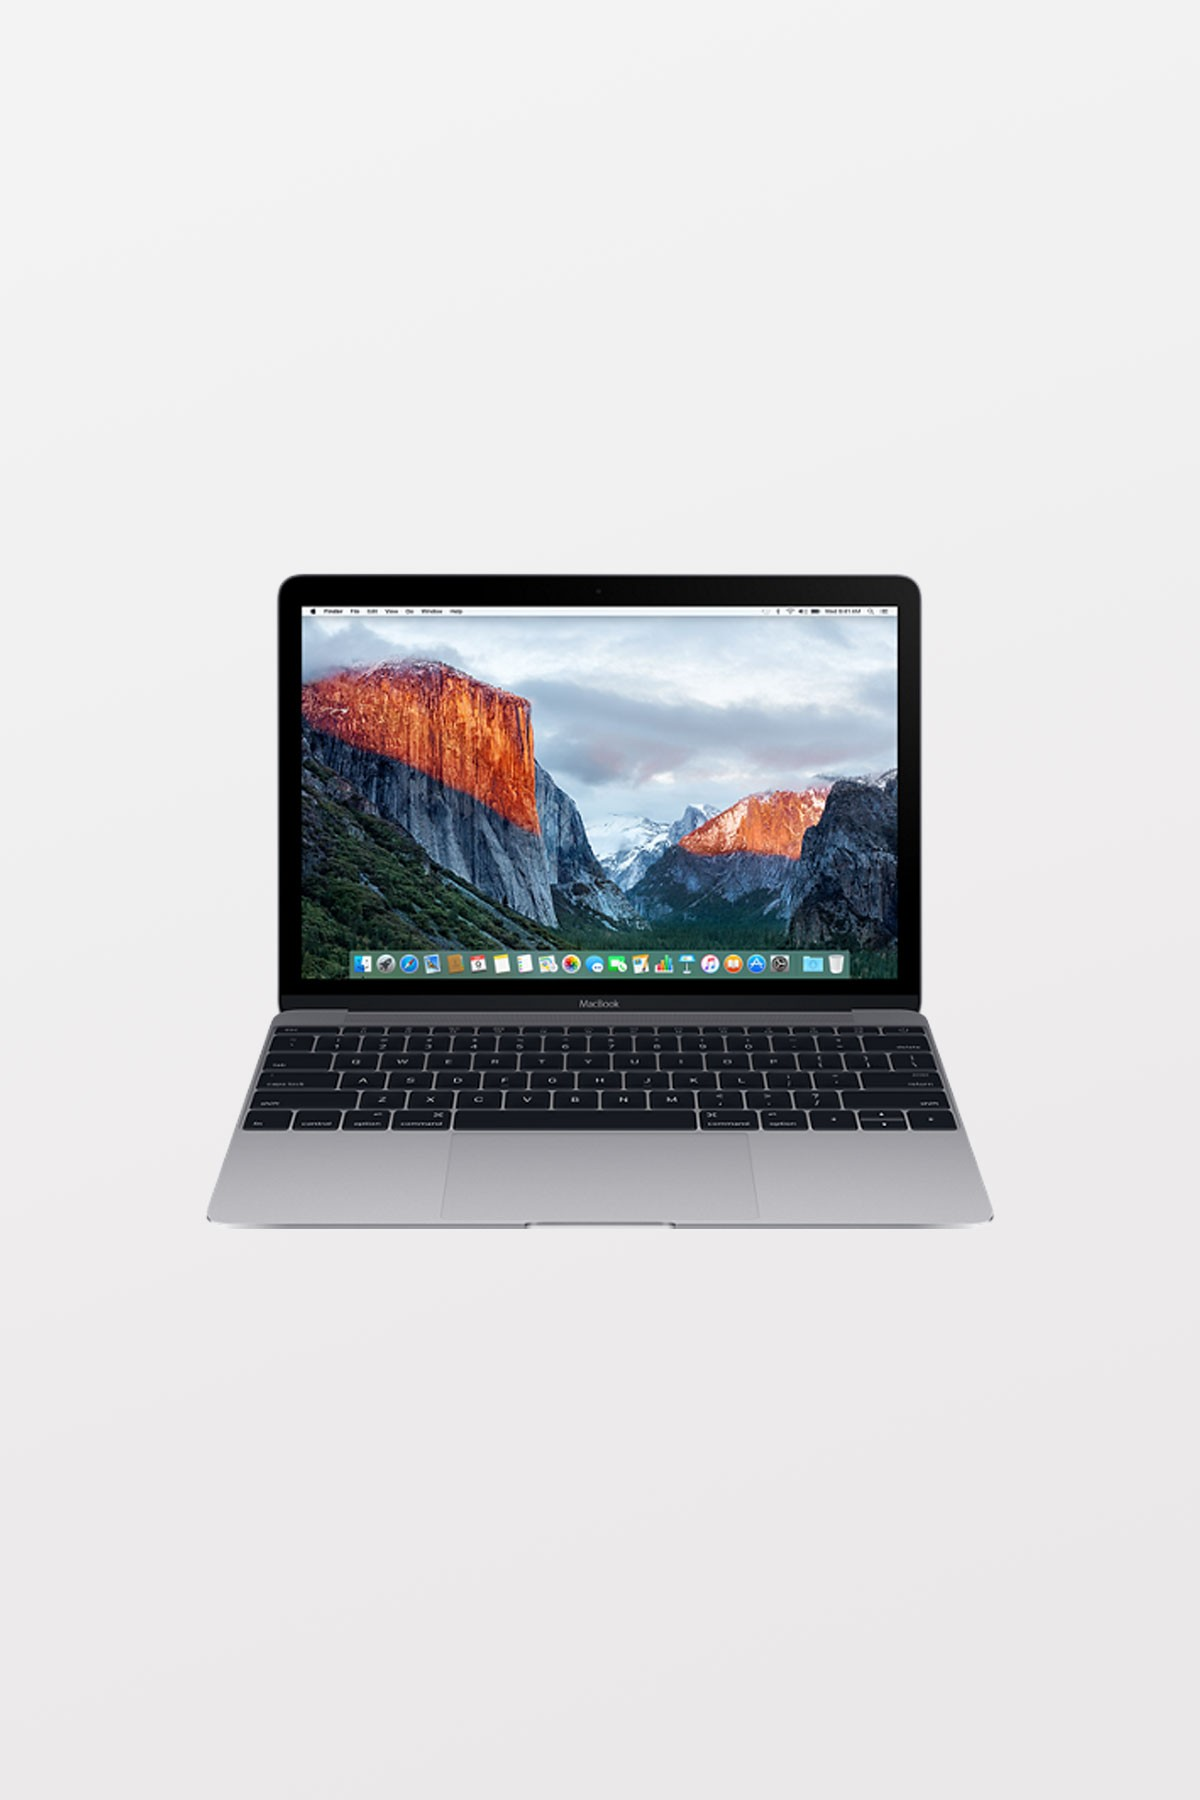 Apple MacBook Retina 12-inch (1.2GHz m3/8GB/256GB Flash/Intel HD Graphics 615) - Space Grey - Refurbished